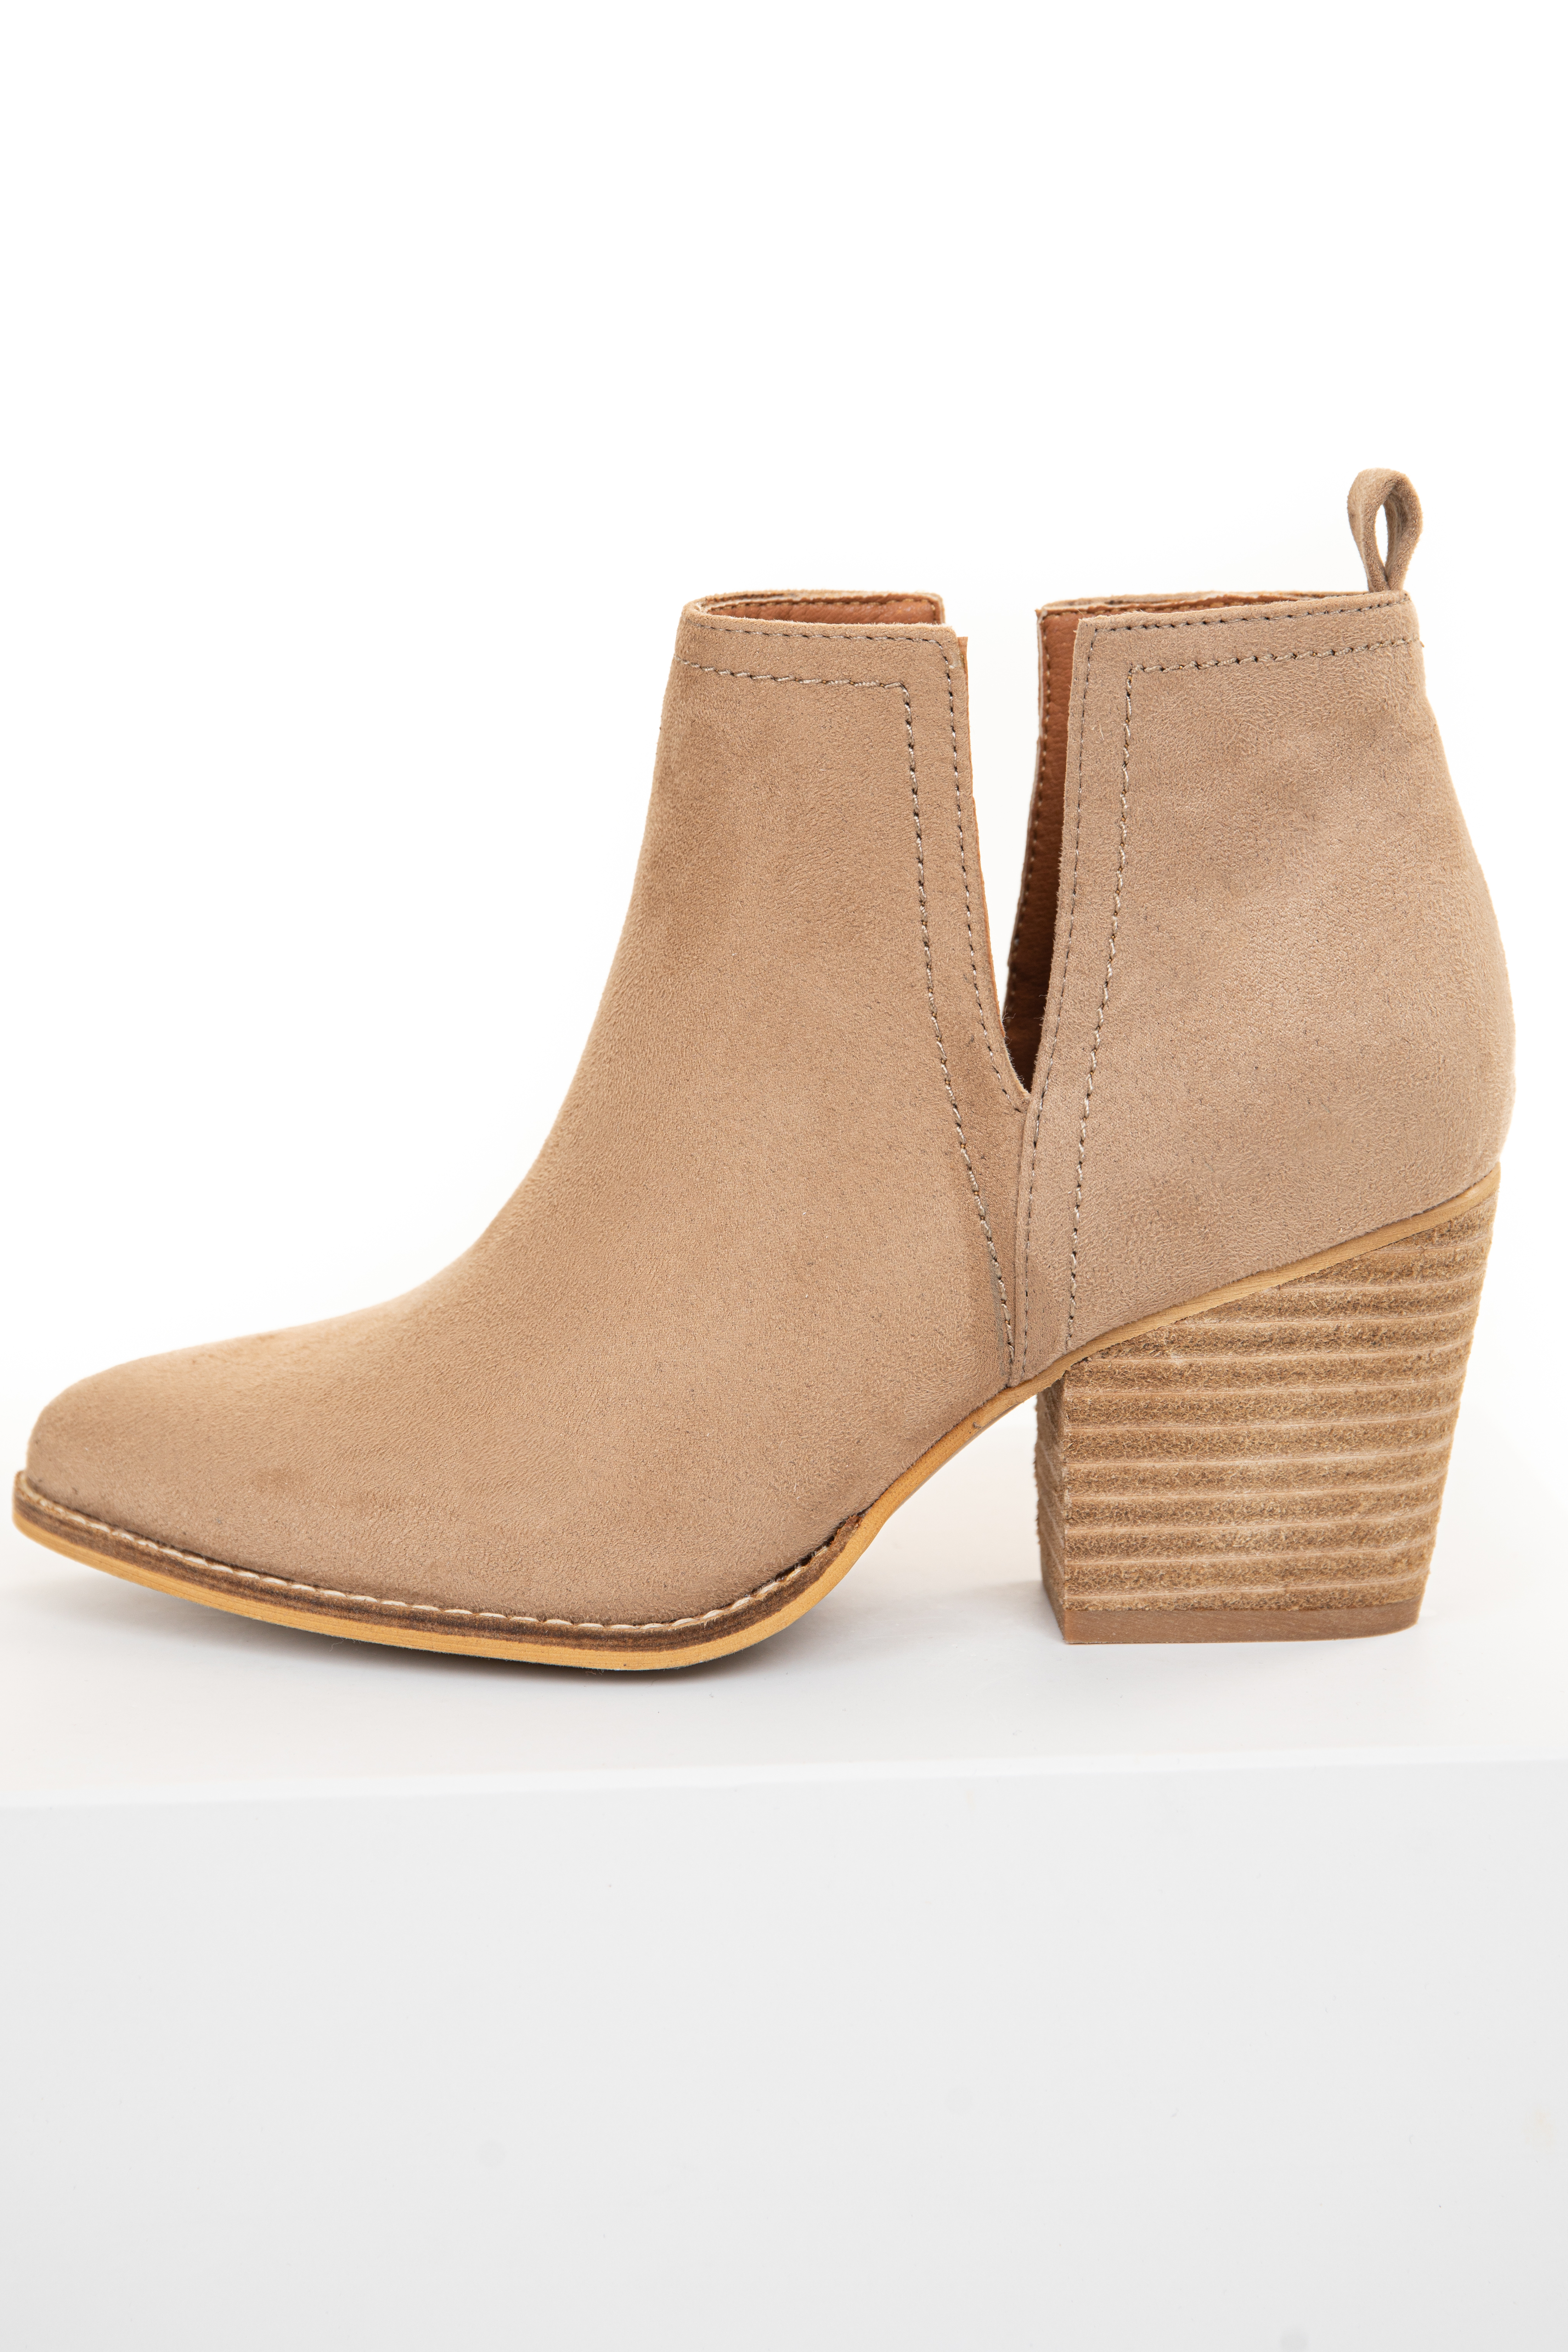 Beige Faux Suede Bootie with Tan Stacked Heel